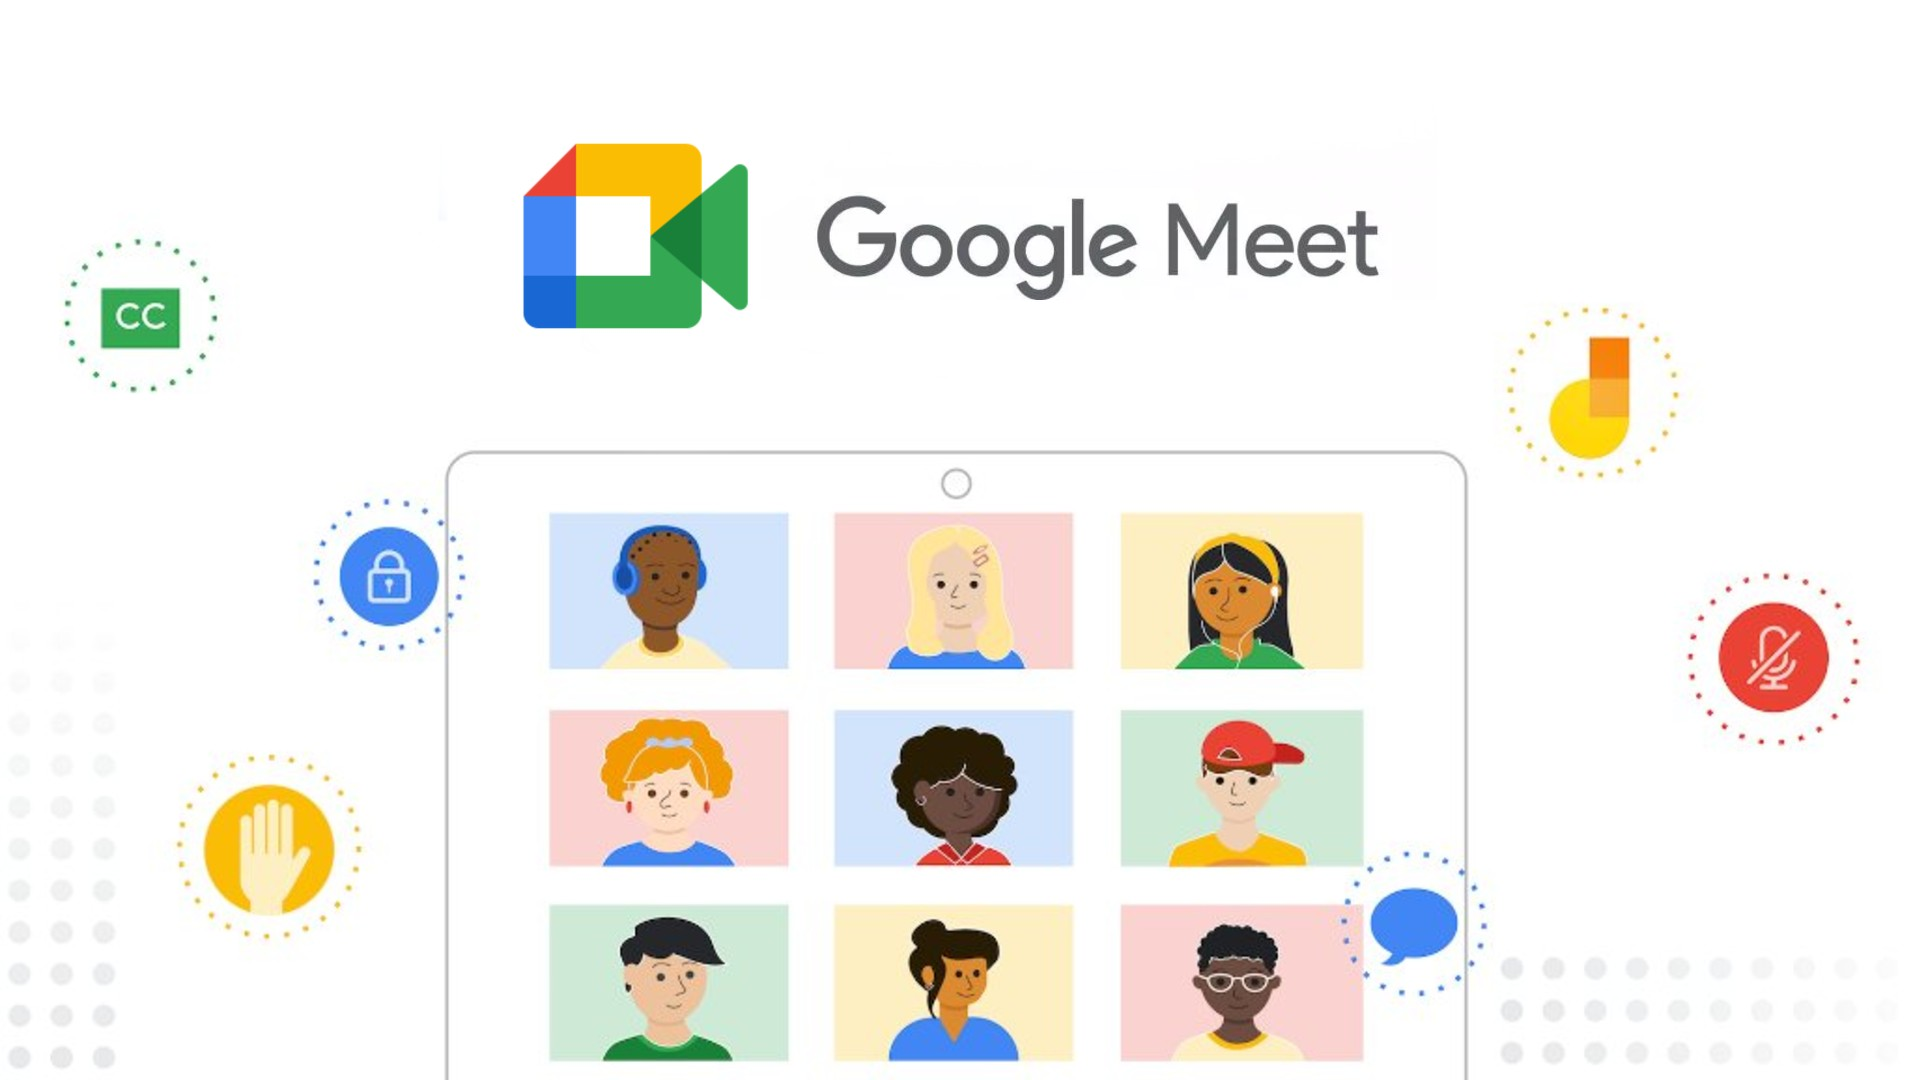 Google Meet now supports 100 breakout rooms per call to help with distance learning